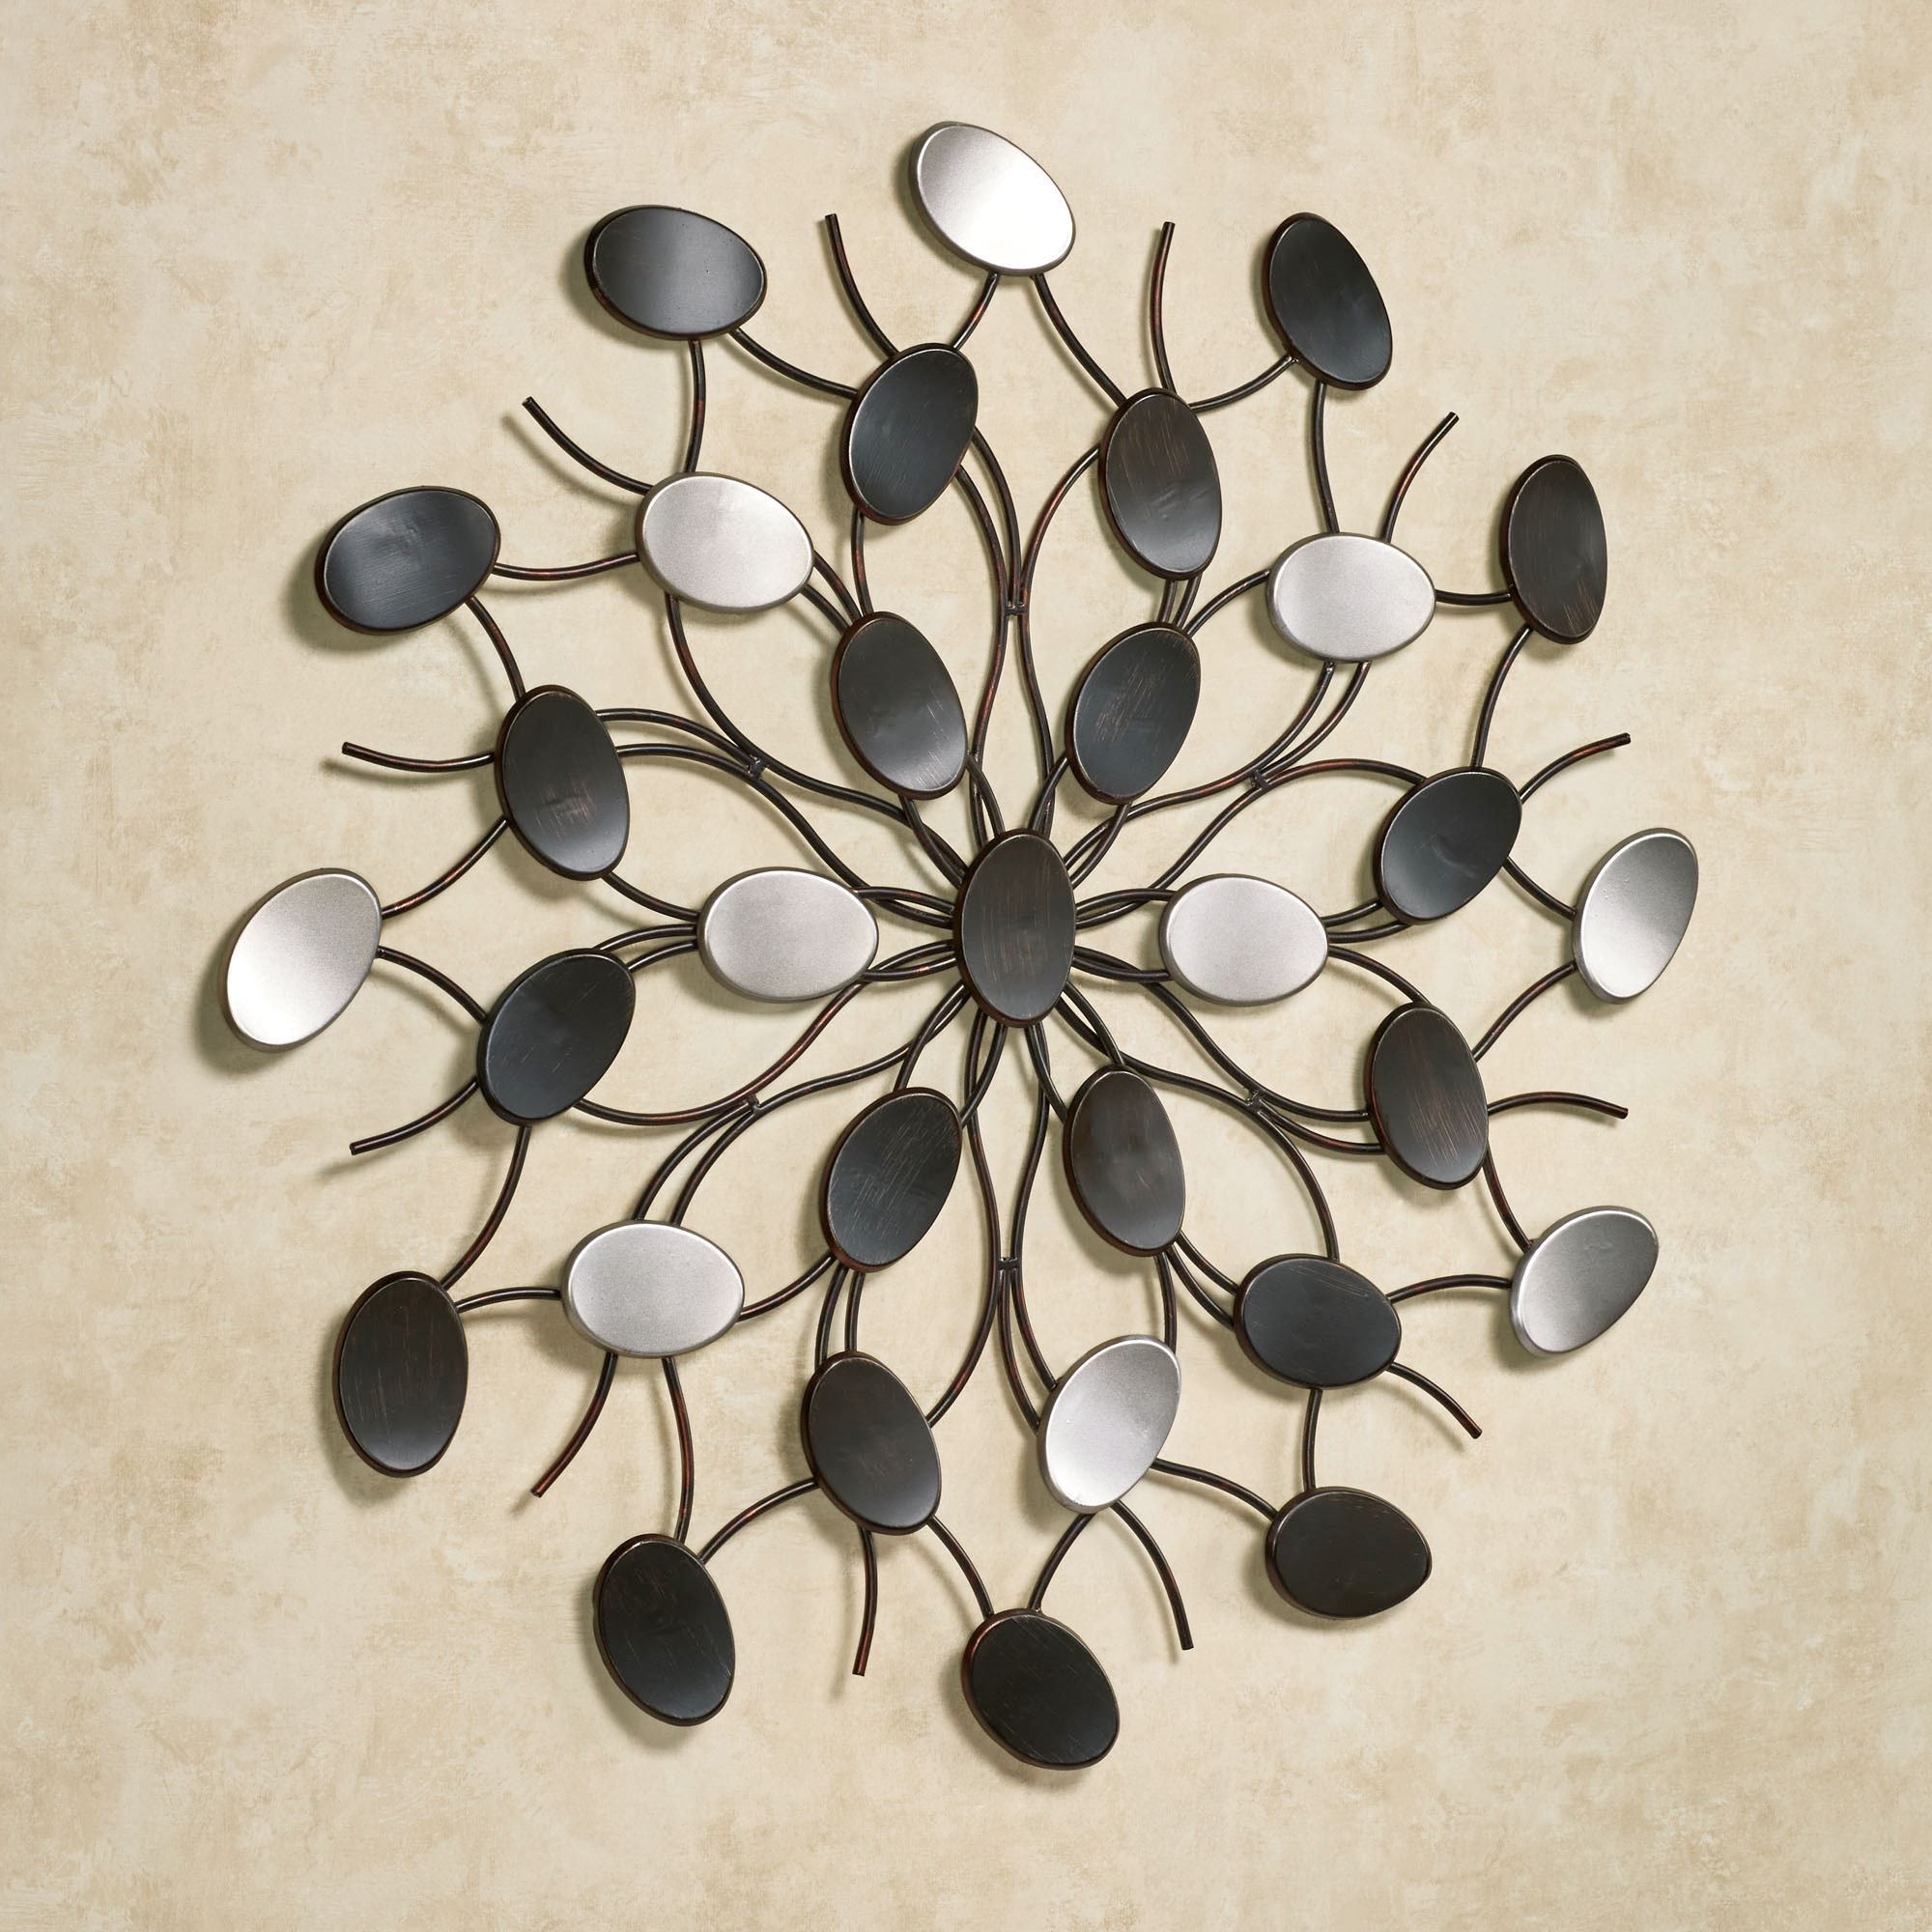 Ordinaire Radiant Petals Wall Art Multi Metallic. Click To Expand